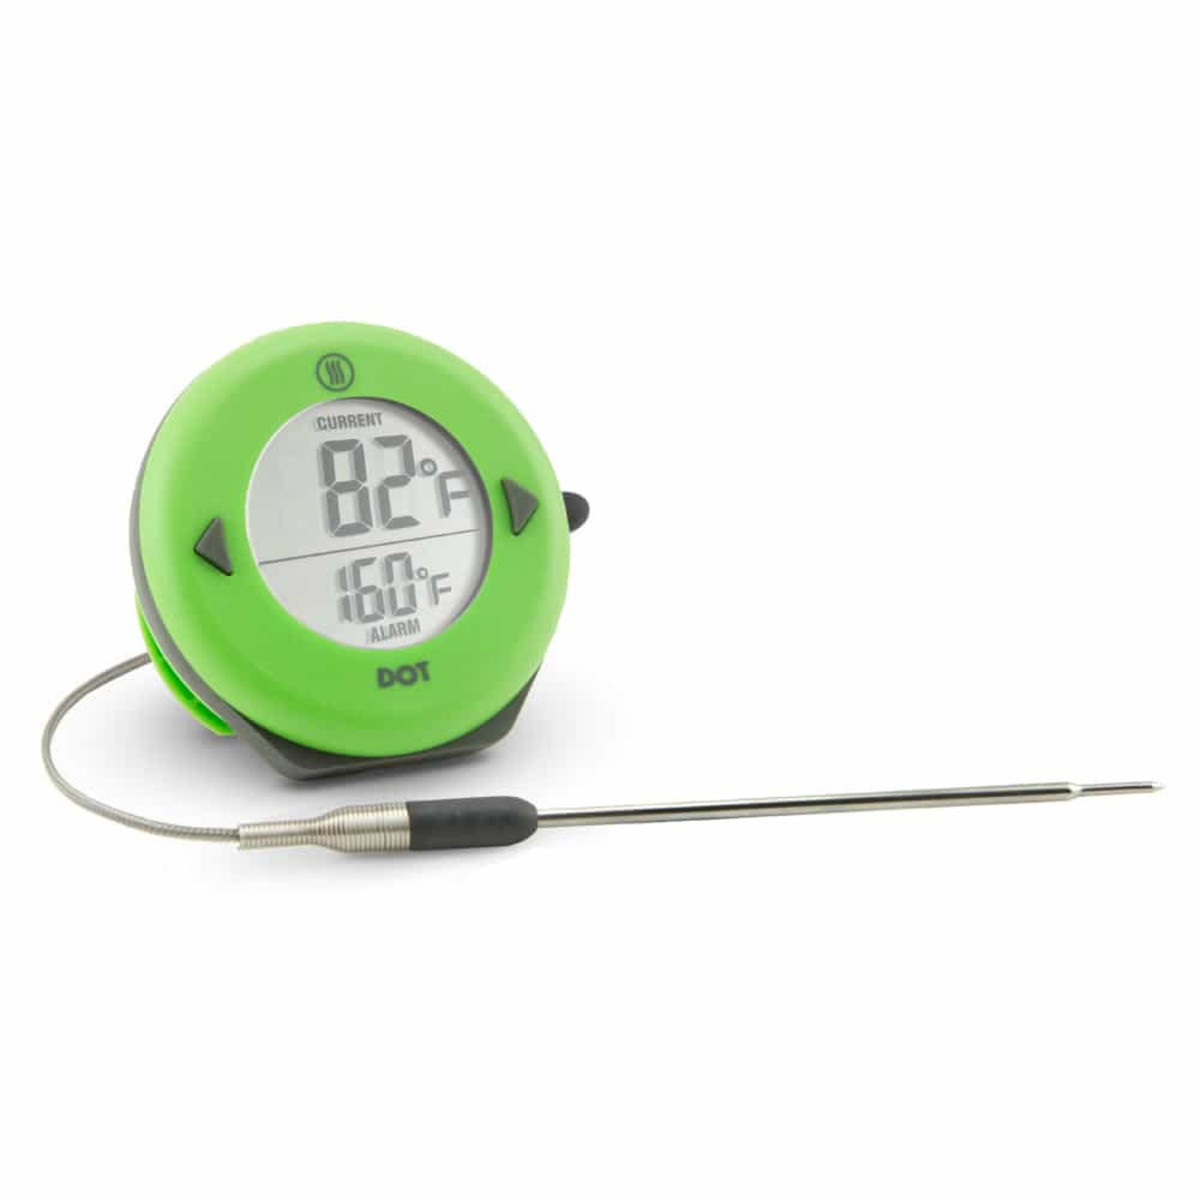 Thermoworks Thermoworks Dot Probe Thermometer